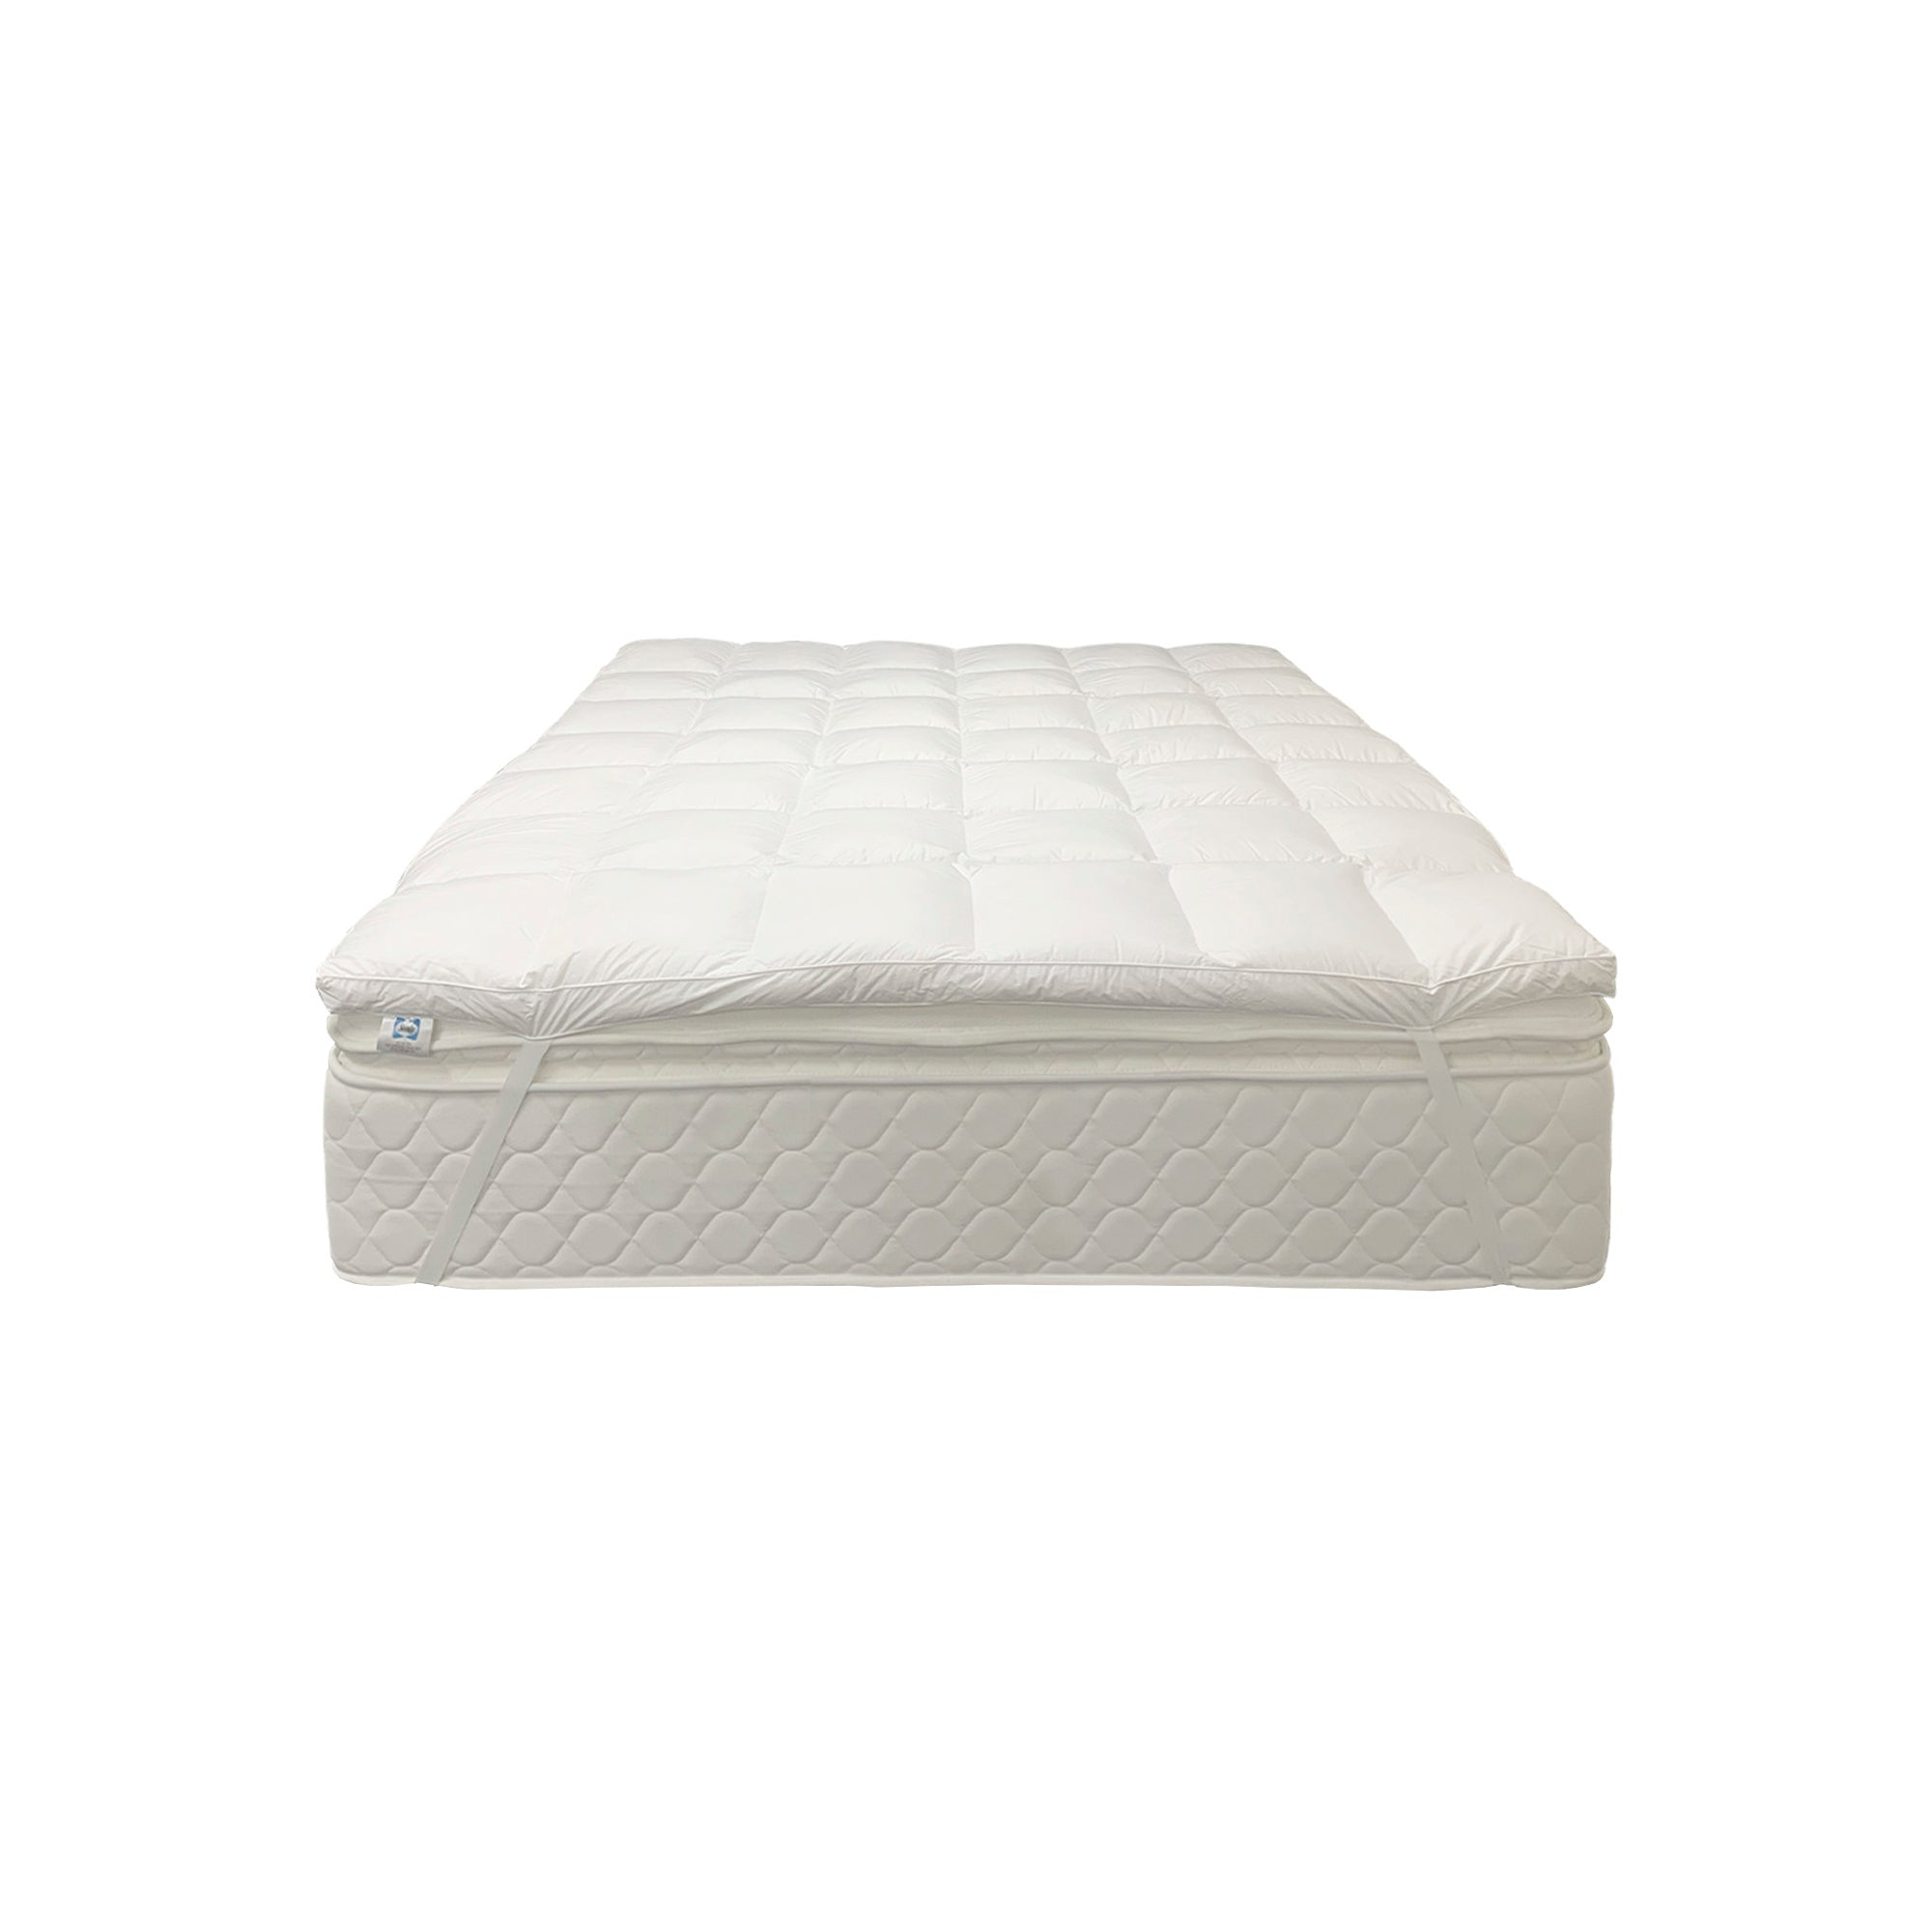 GEL LUXE FIBRE MATTRESS OVERLAY